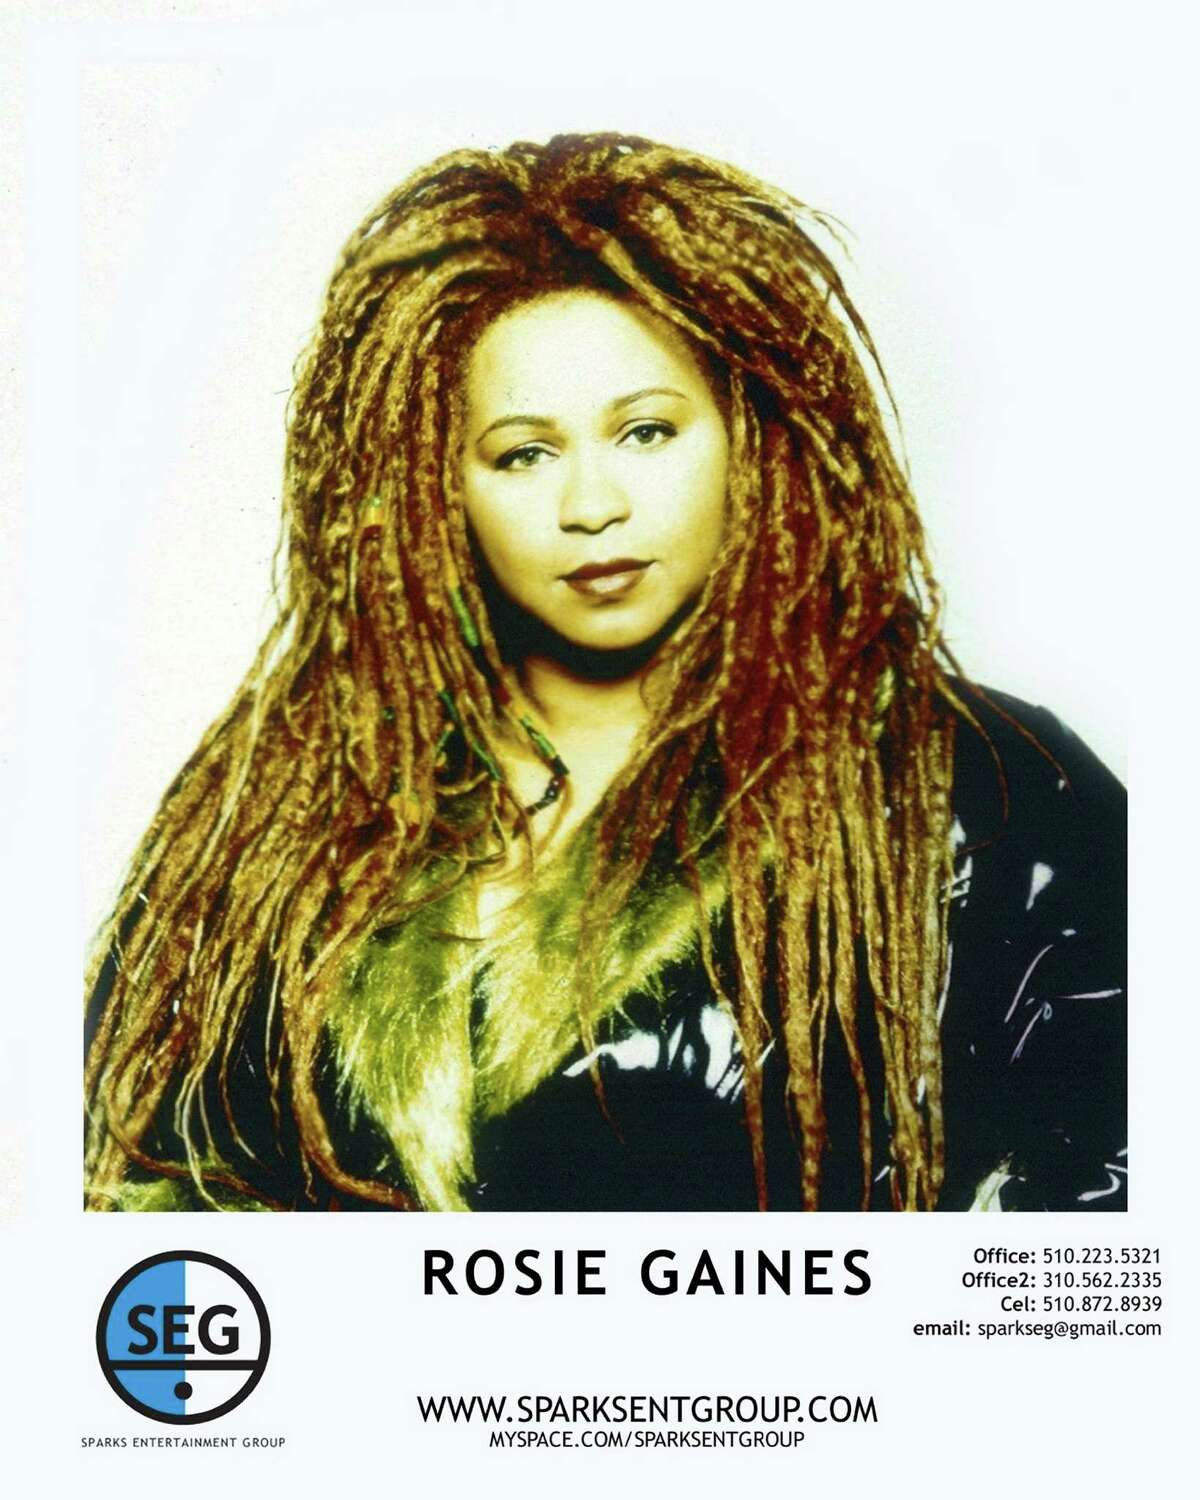 Rosie Gaines, who rose to prominence with Prince's band in the 1990s, has fallen on hard times.